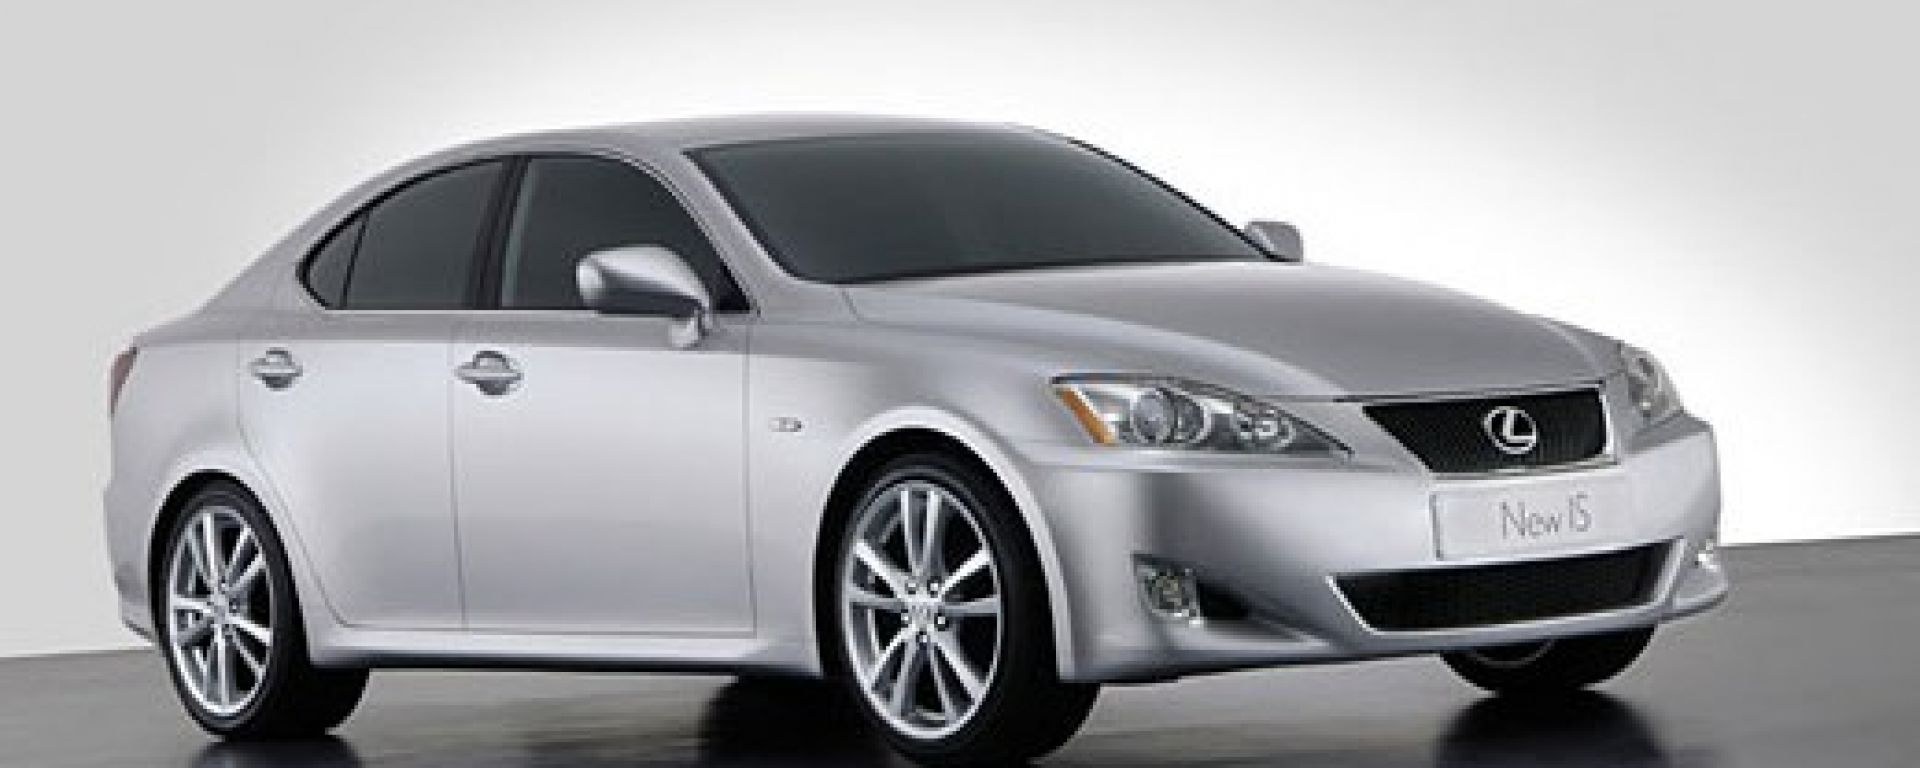 Lexus IS 2005